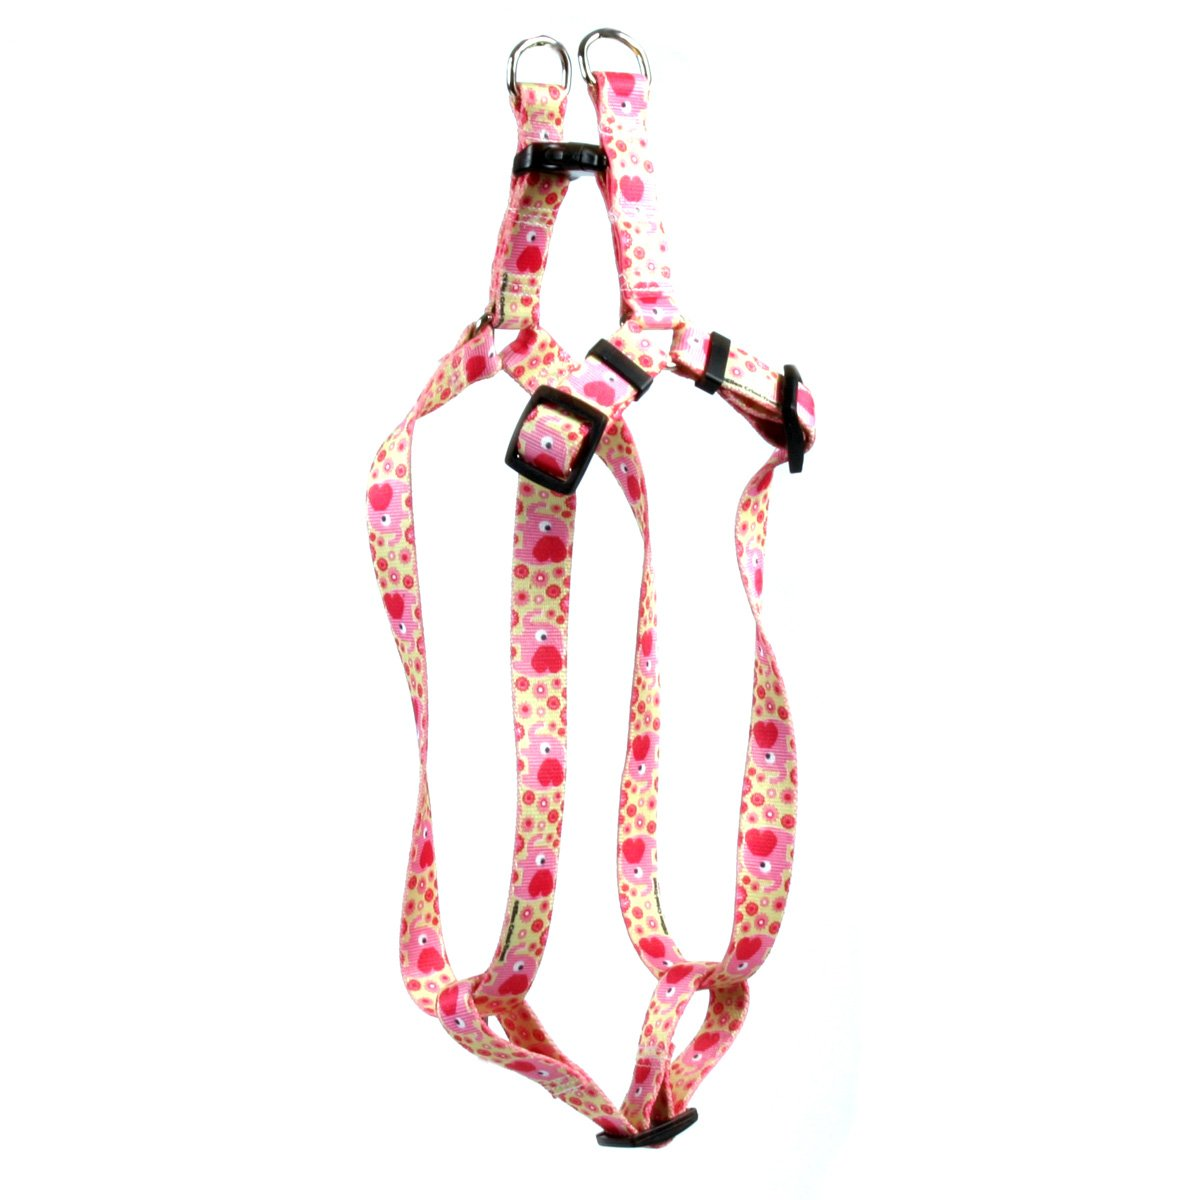 Yellow Dog Design Pink Elephants Step-in Dog Harness, Medium-3/4 Wide and fits Chest of 15 to 25''